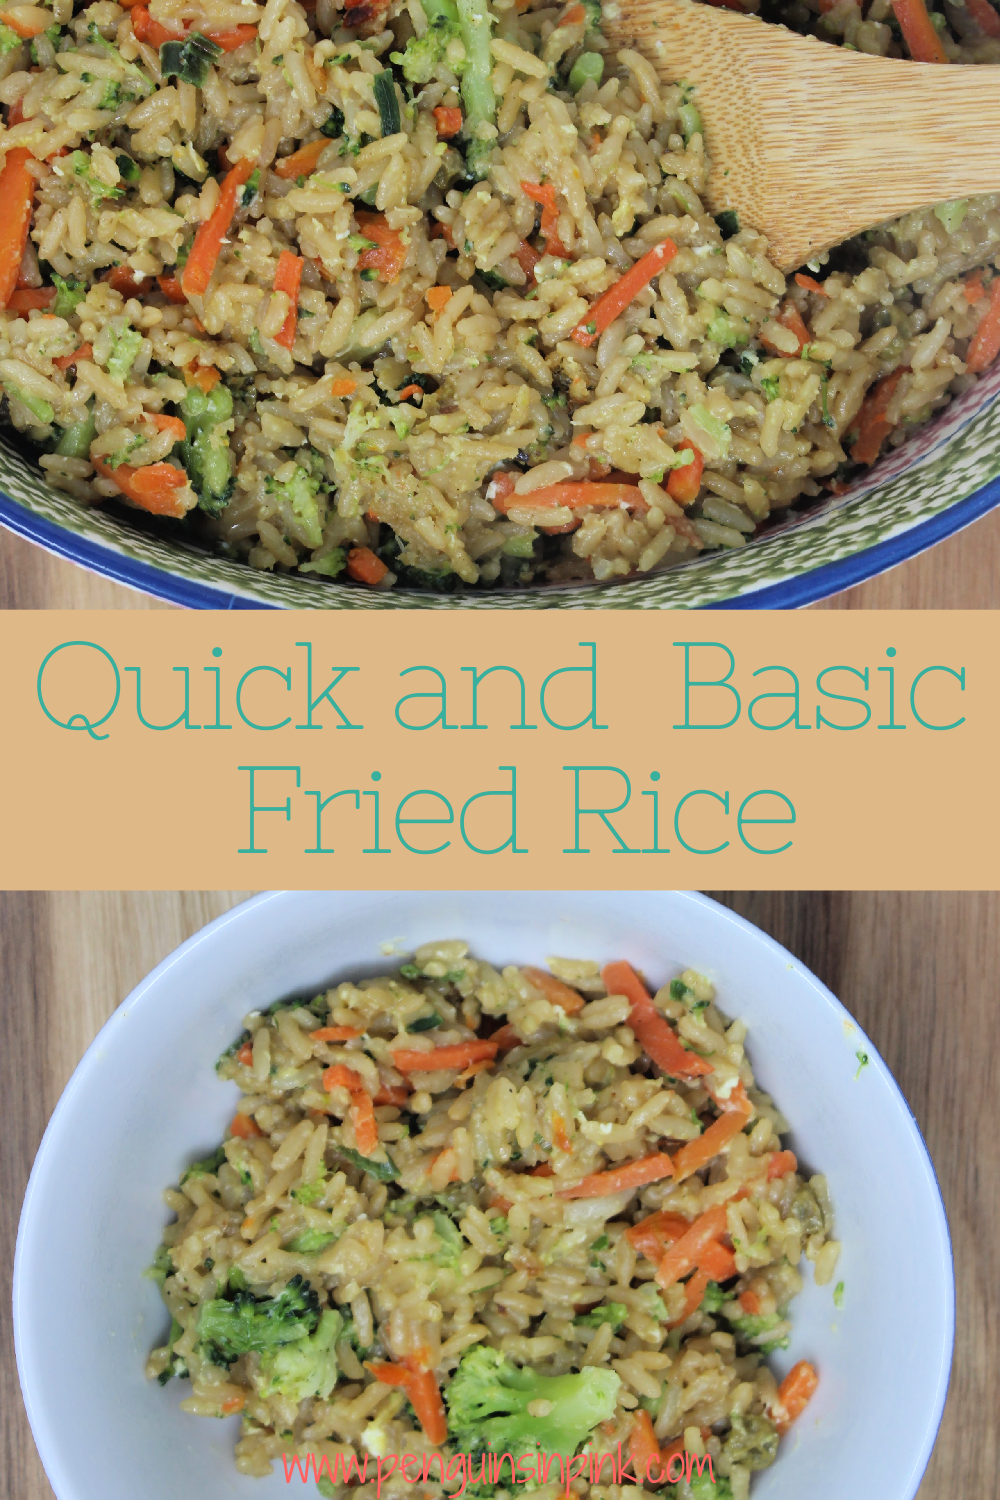 Quick and basic fried rice is made with leftover rice and mixed with scrambled eggs, mixed frozen veggies garlic and ginger and topped with soy sauce, sesame oil, or sriracha mayo.